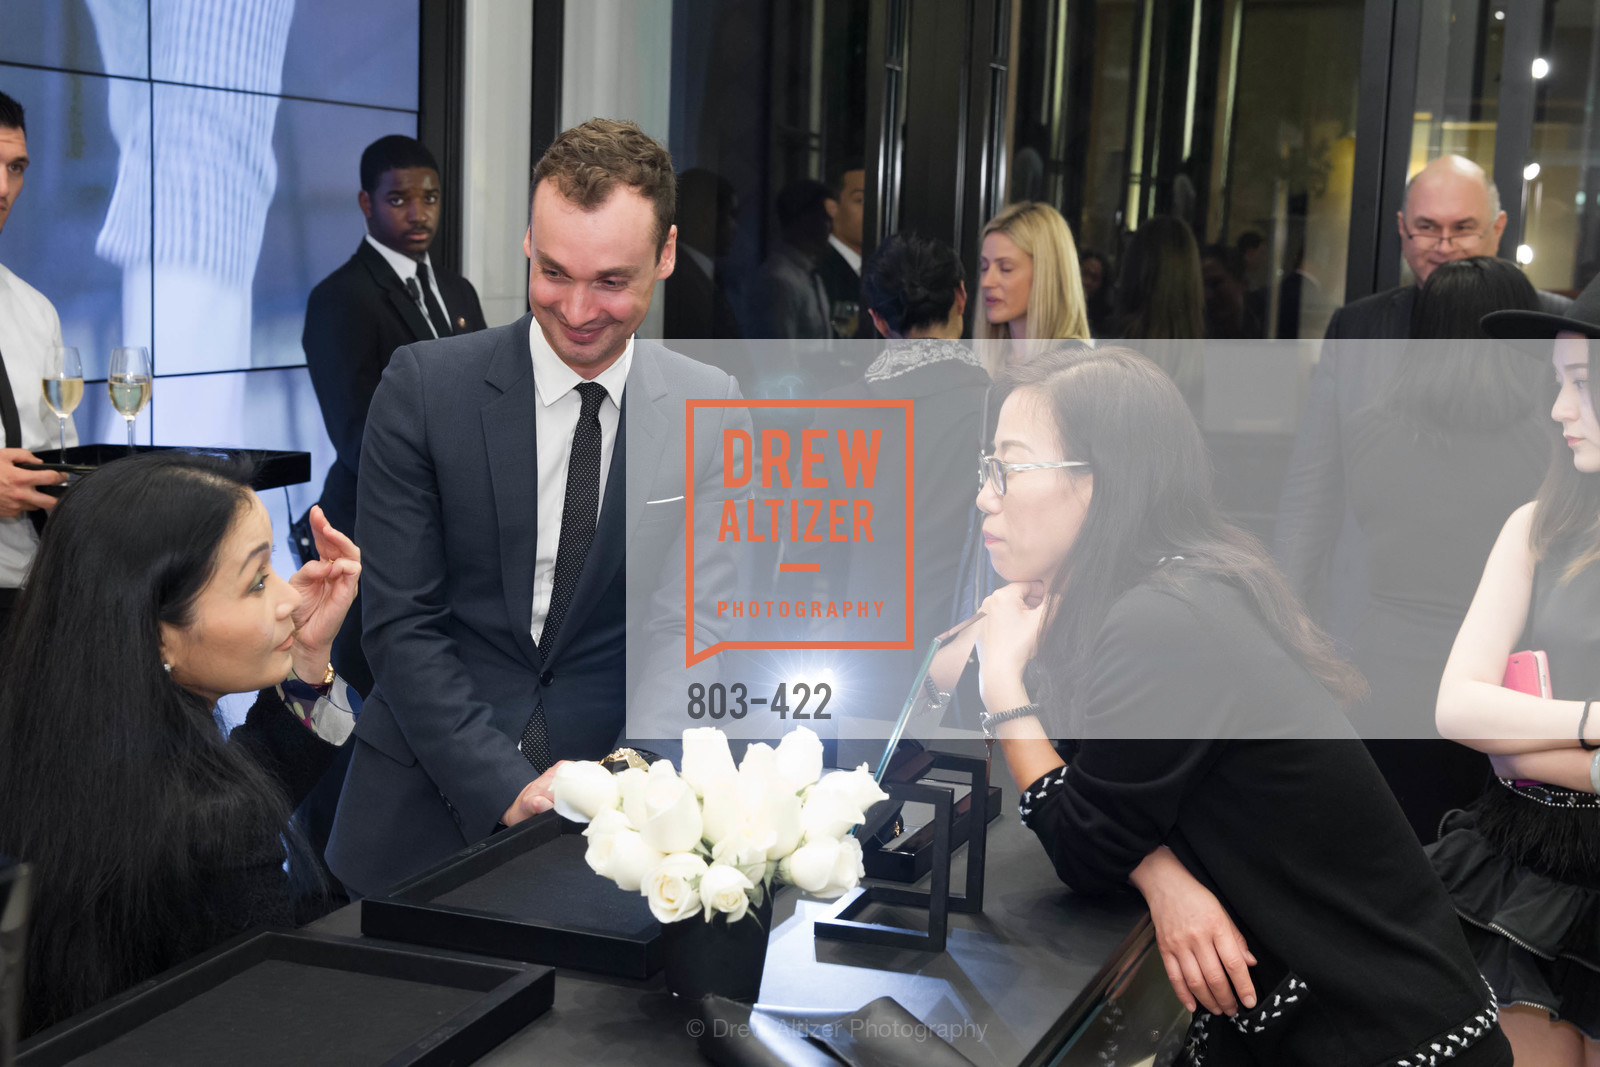 Extras, Chanel San Francisco Lion, October 28th, 2015, Photo,Drew Altizer, Drew Altizer Photography, full-service agency, private events, San Francisco photographer, photographer california